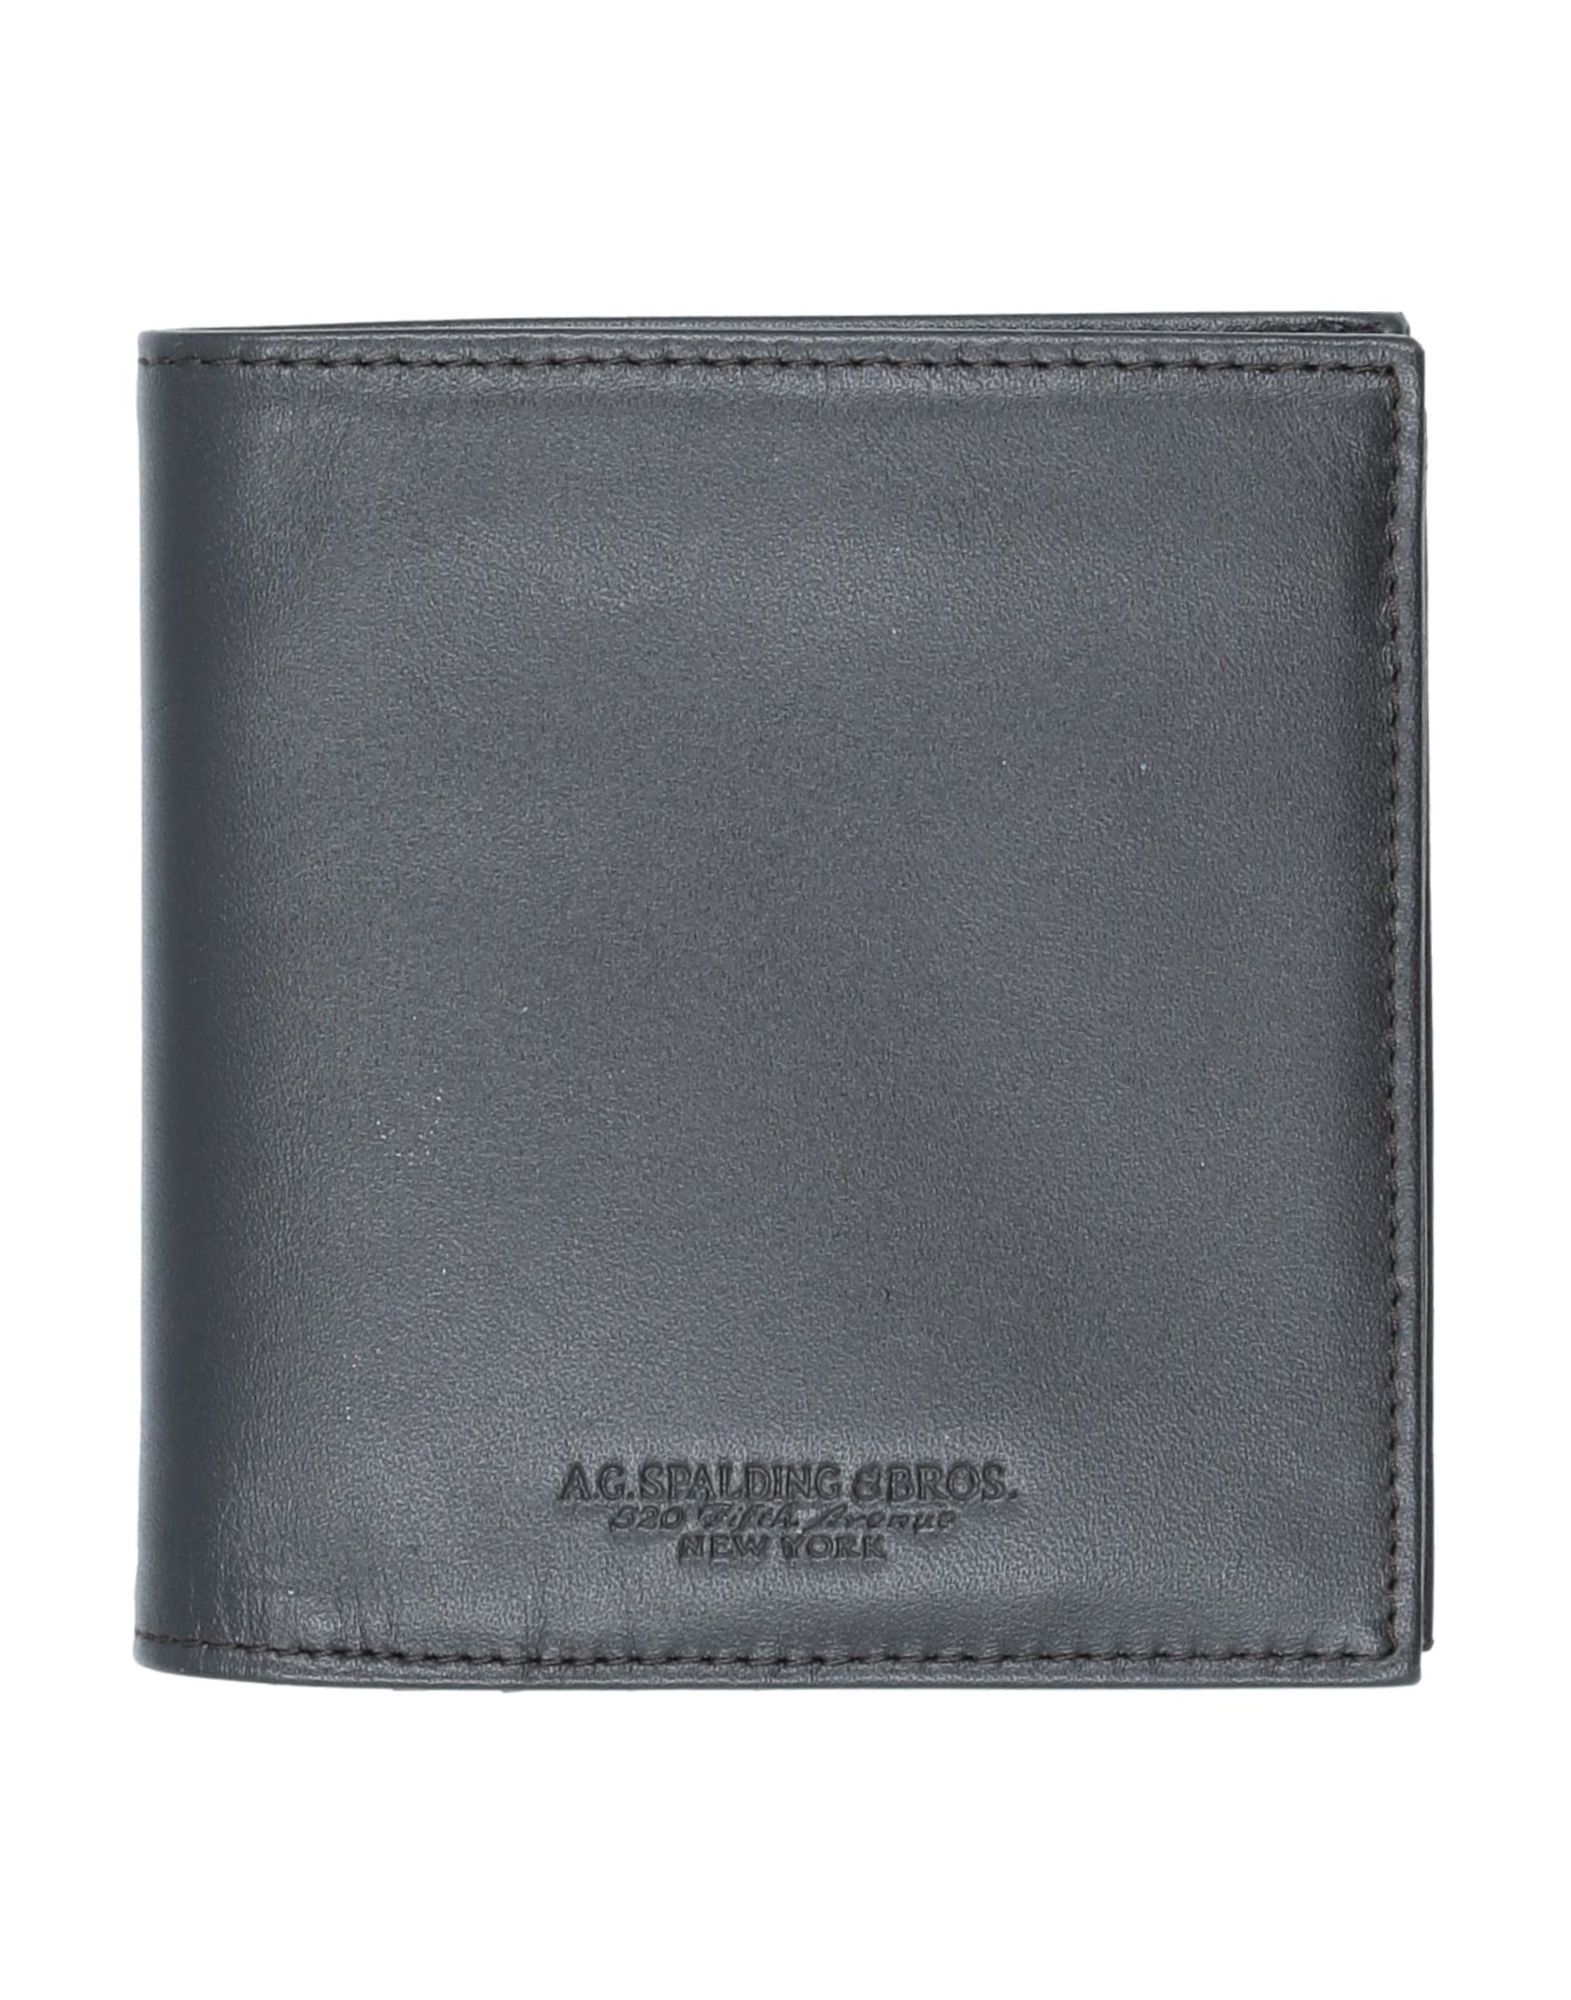 A.G. SPALDING & BROS. 520 FIFTH AVENUE New York Wallets - Item 46716649